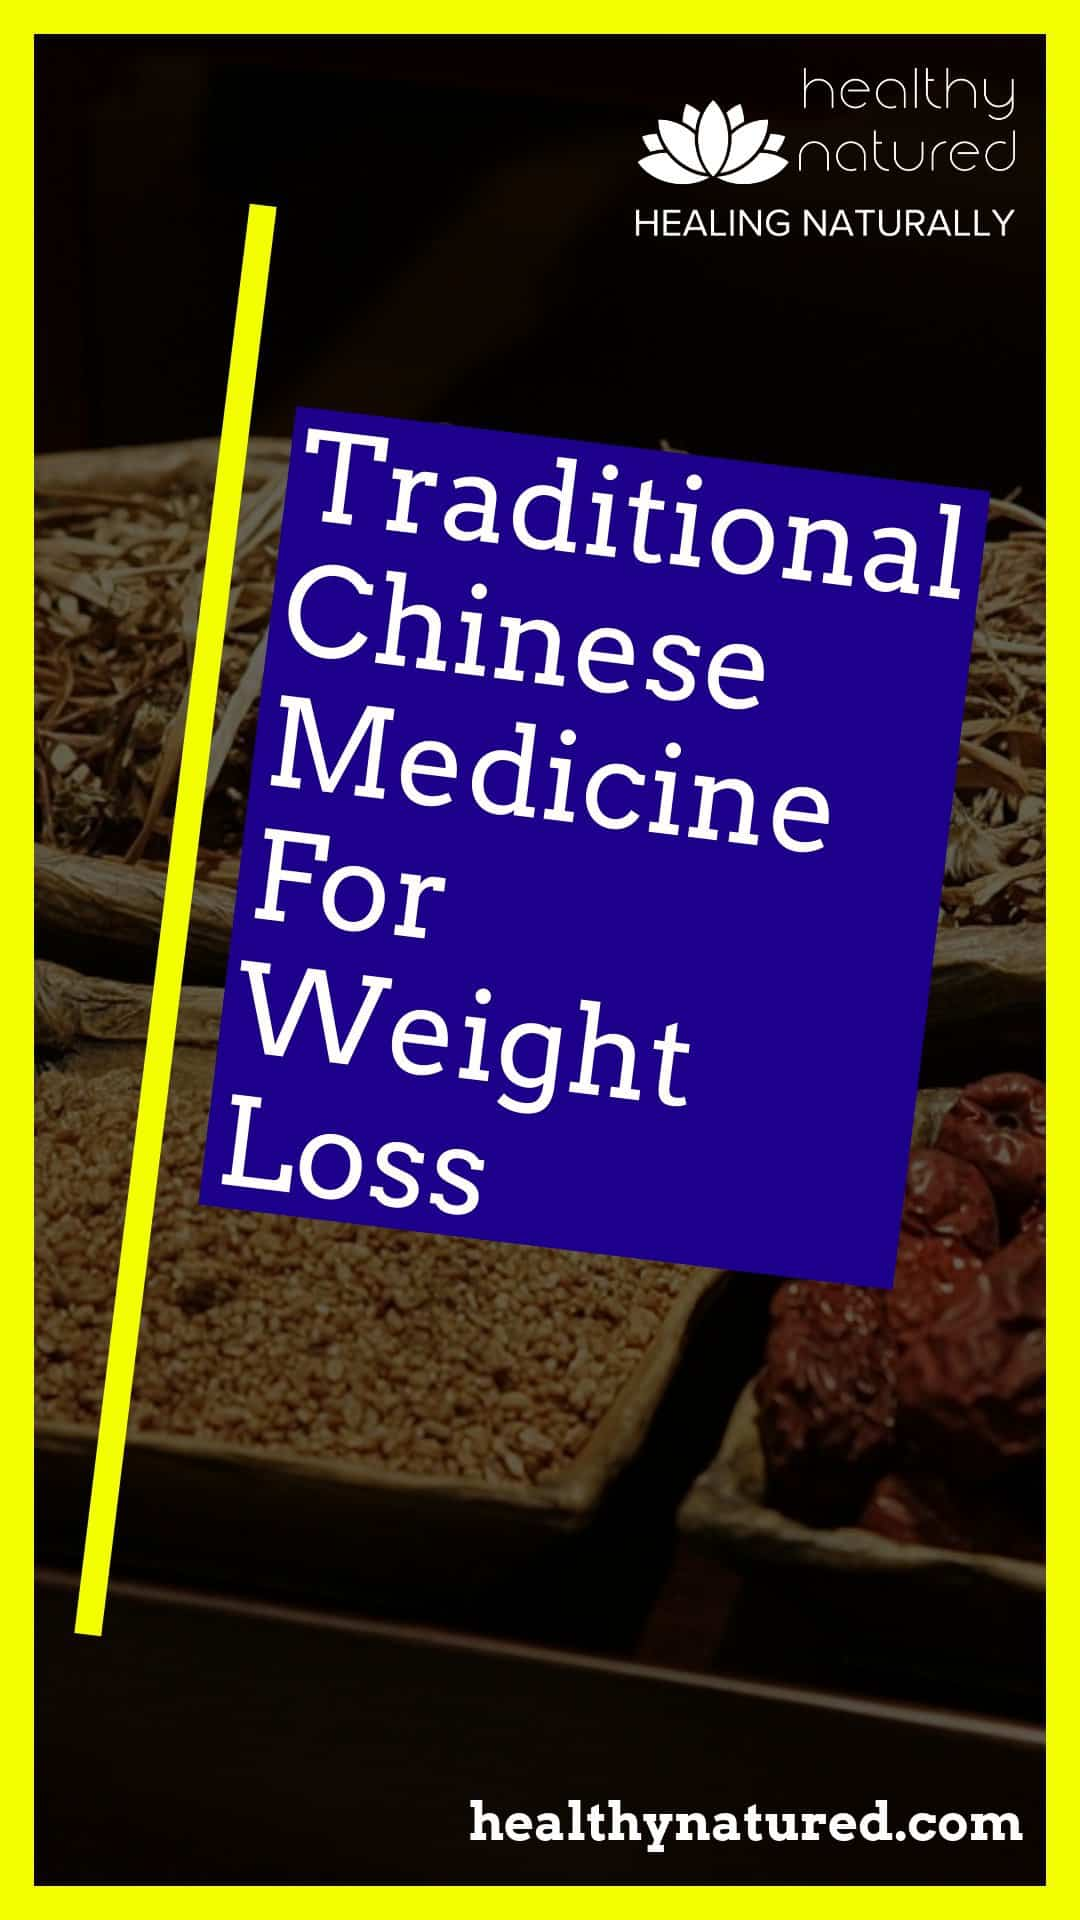 Are you tired of diets? Sick of starving yourself? Unable to stick with the normal unrealistic calorie intake proposed in most weight loss plans? Then burn that belly fat naturally! Traditional Chinese Medicine For Weight Loss enables you to balance Qi, stimulate meridians and lose weight safely!